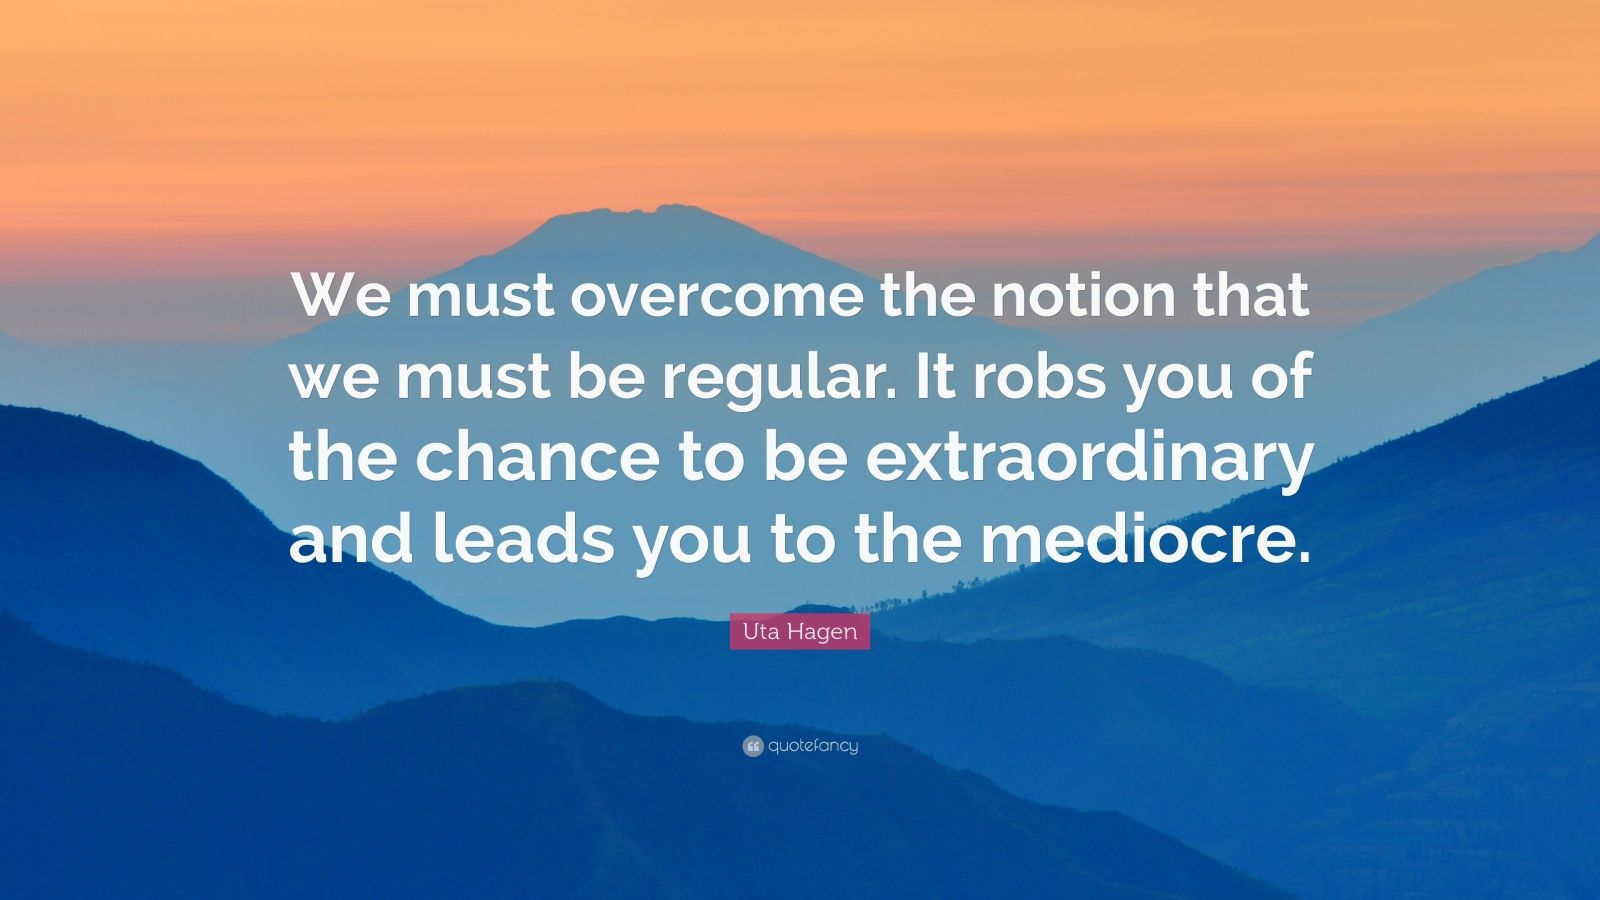 """Uta Hagen Quote: """"We must overcome the notion that we must be regular. It robs you of the chance to be extraordinary and leads you to the mediocre."""""""